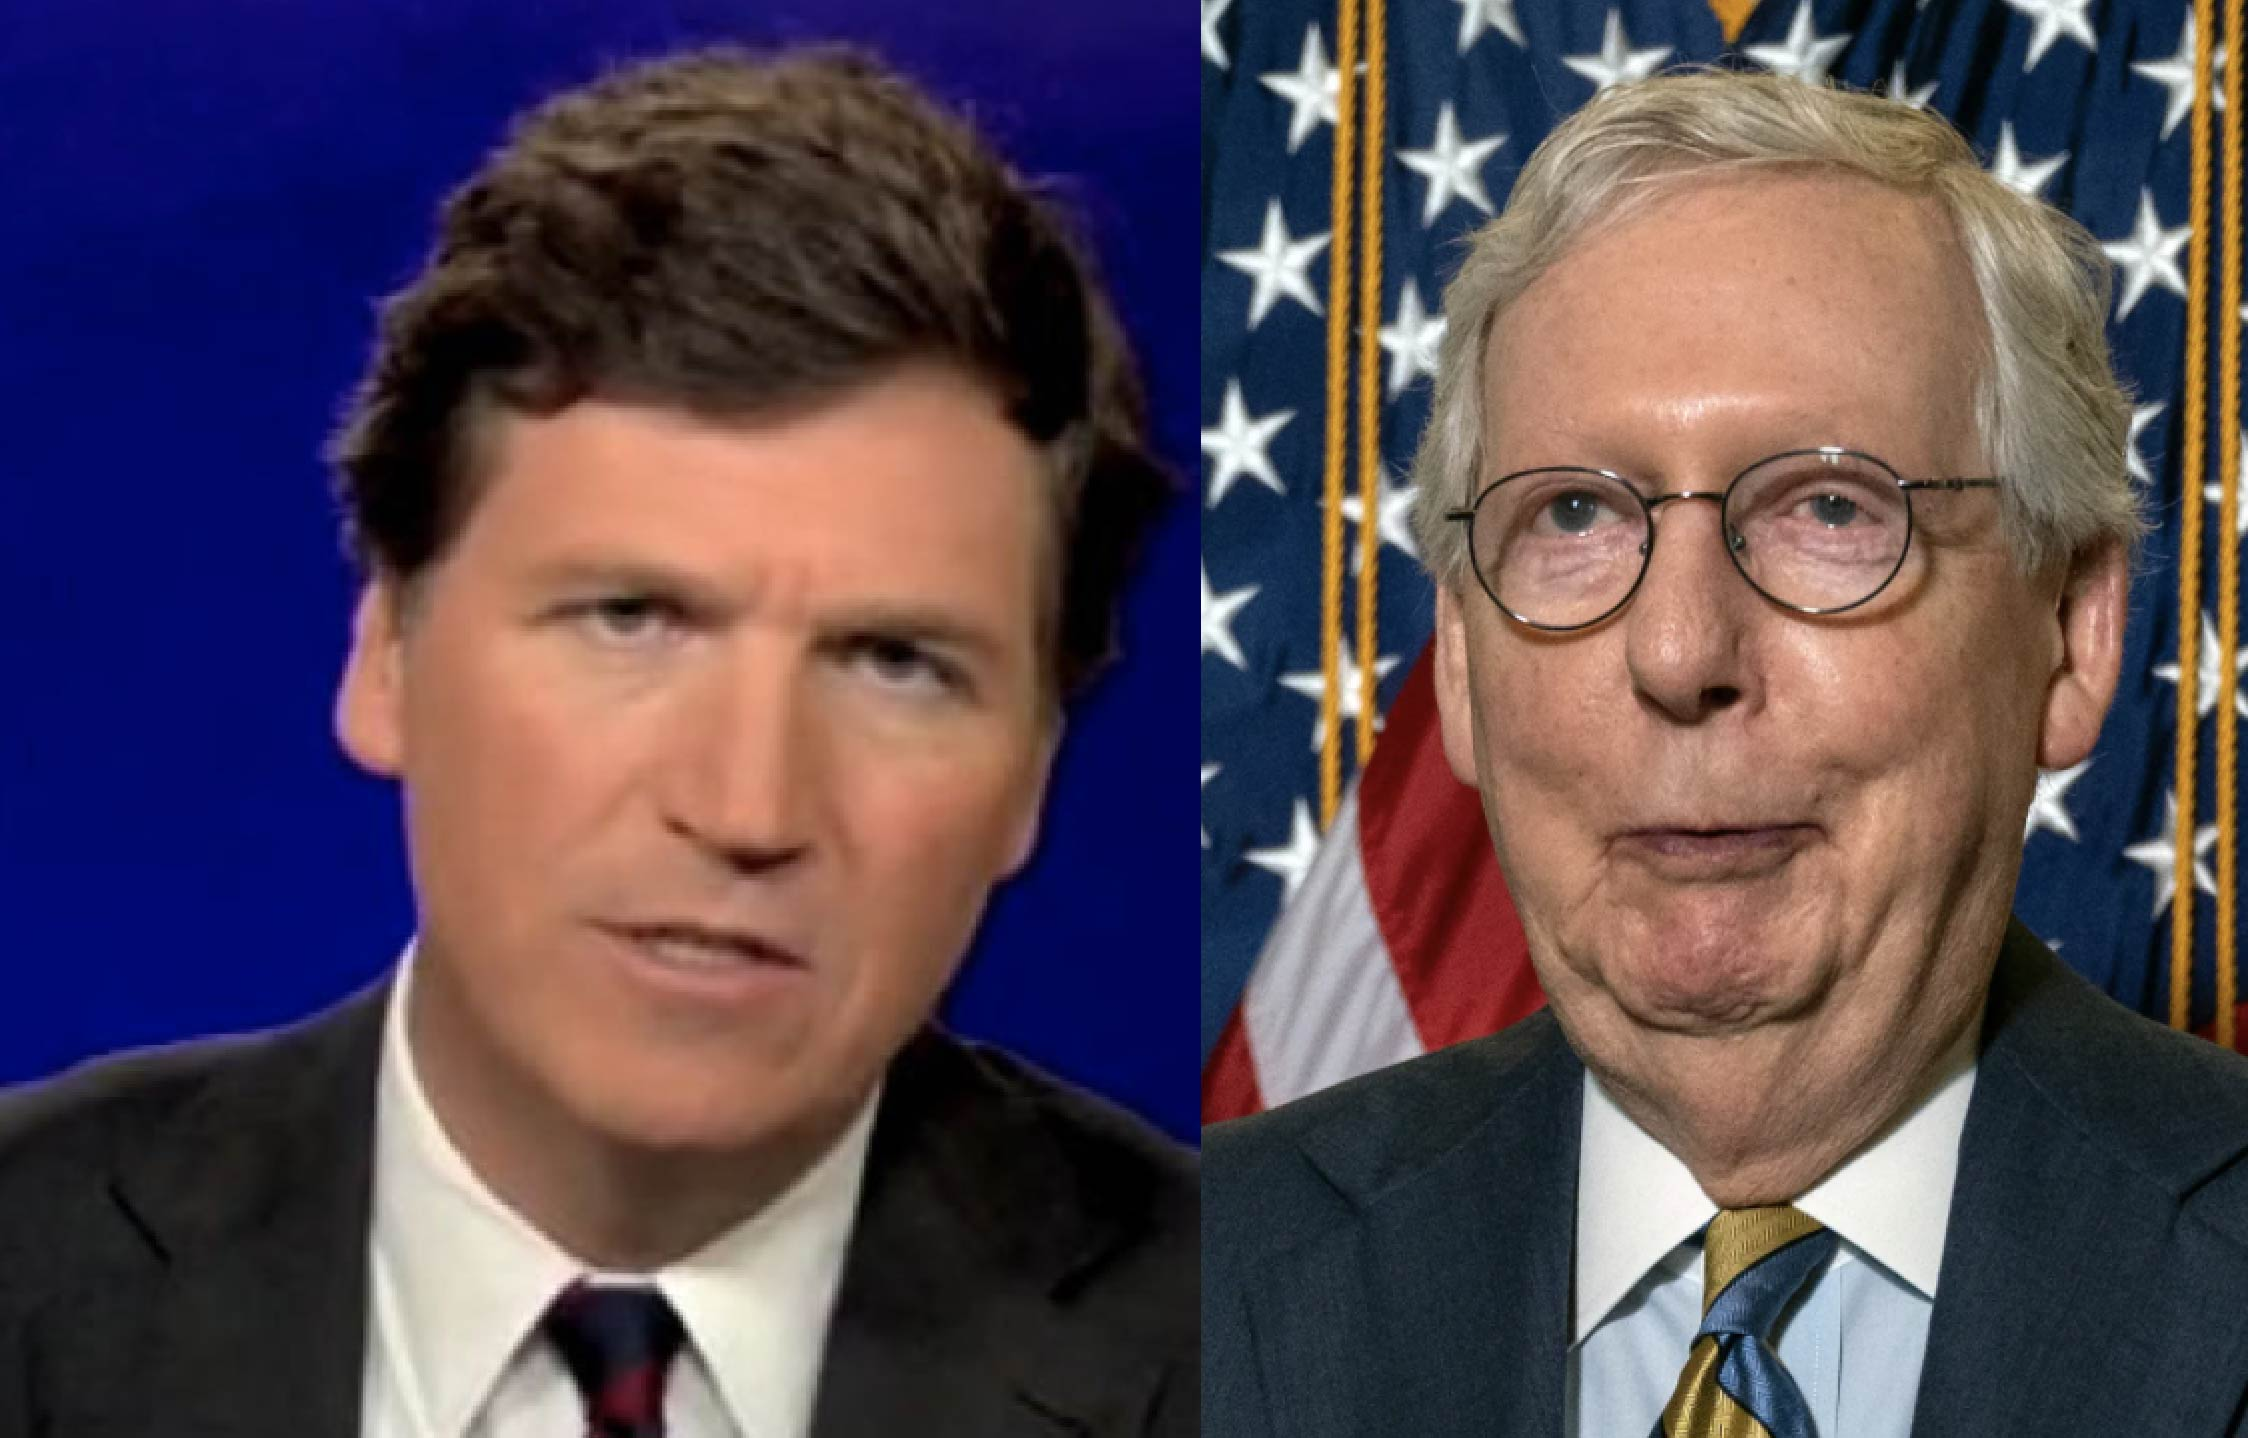 [VIDEO] Tucker Says He Knows What's Really Going On Here, And Mitch McConnell's In On It